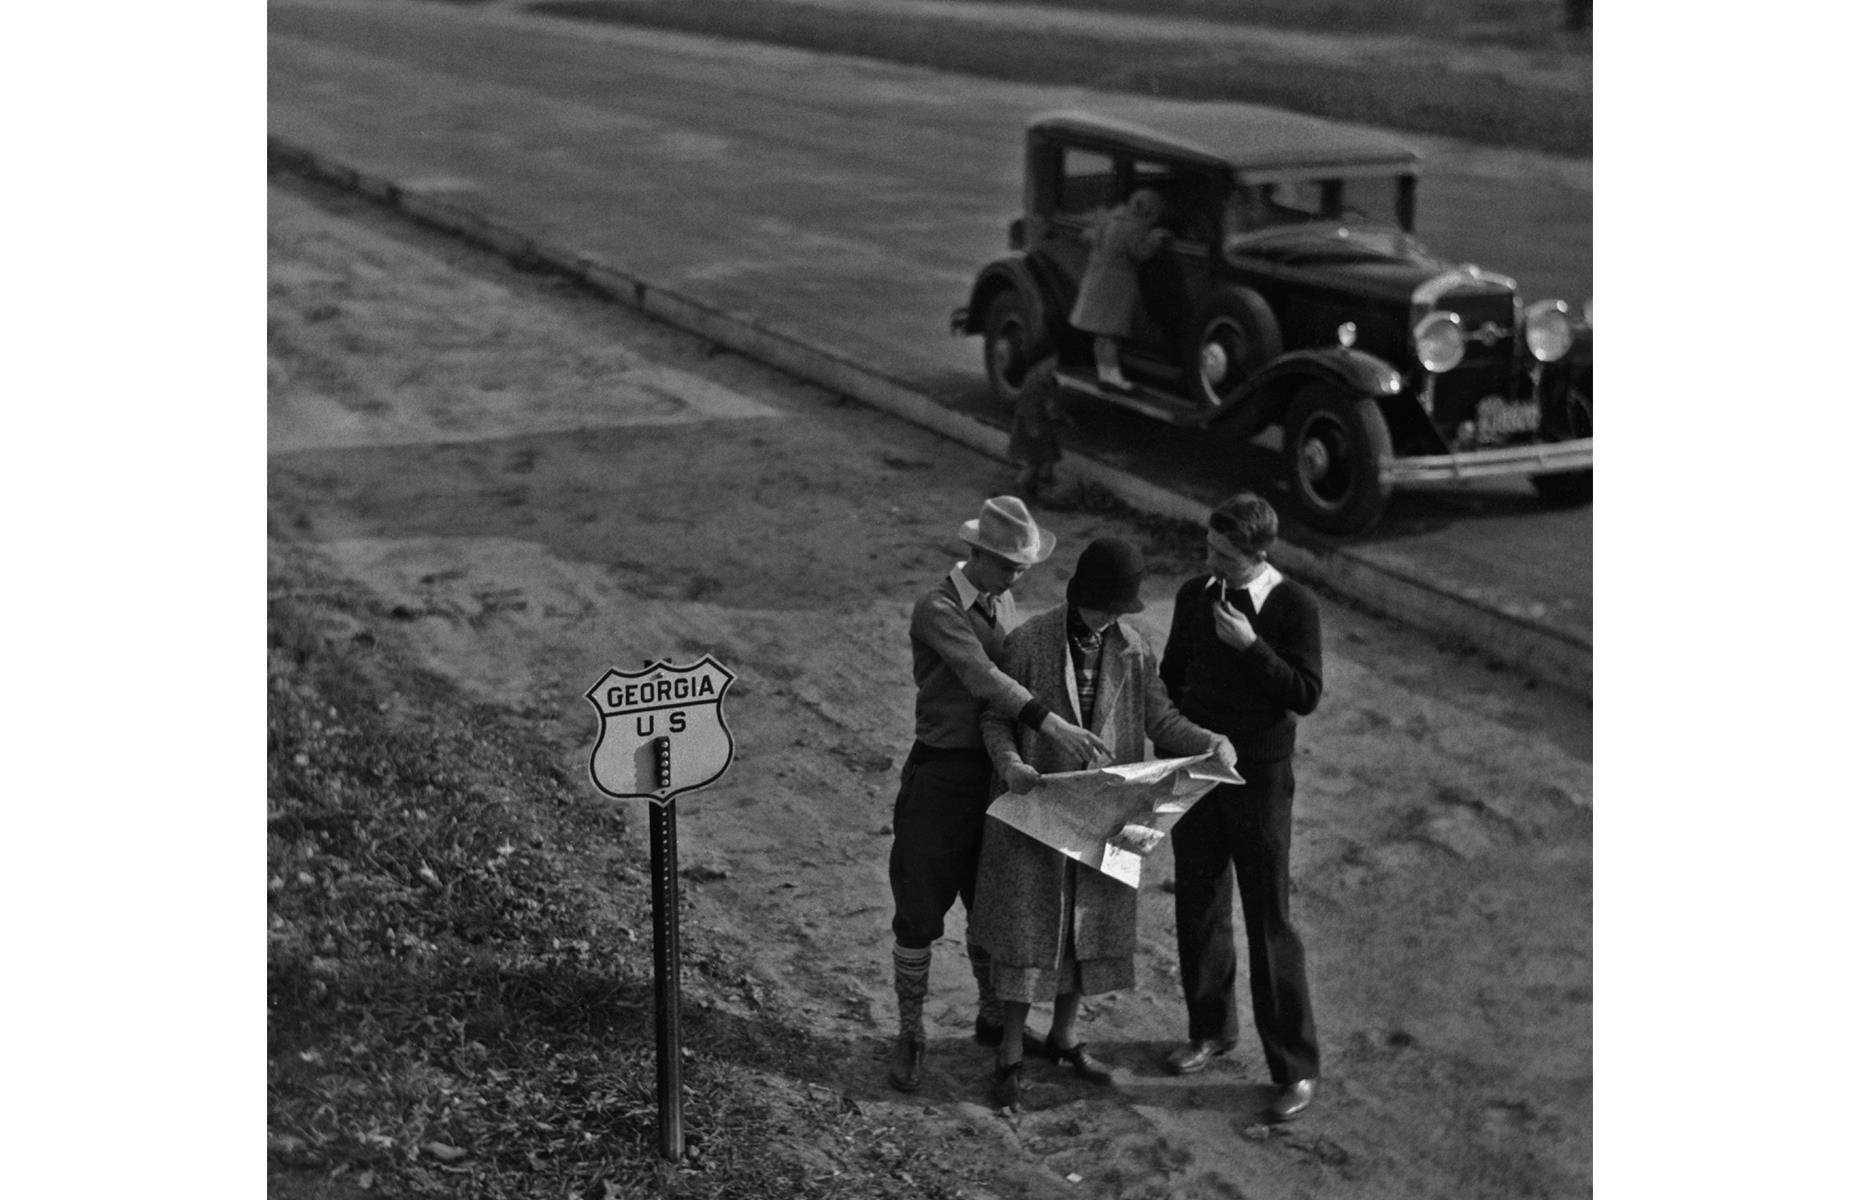 Slide 31 of 35: Road conditions improved dramatically in the United States through the 1920s and 1930s, and motorways were built across the country, as well as in European destinations such as Germany. The UK also invested heavily in dual-carriageway roads. Here, a young group of road-trippers in the US state of Georgia consult a map at the side of the highway in the 1930s.